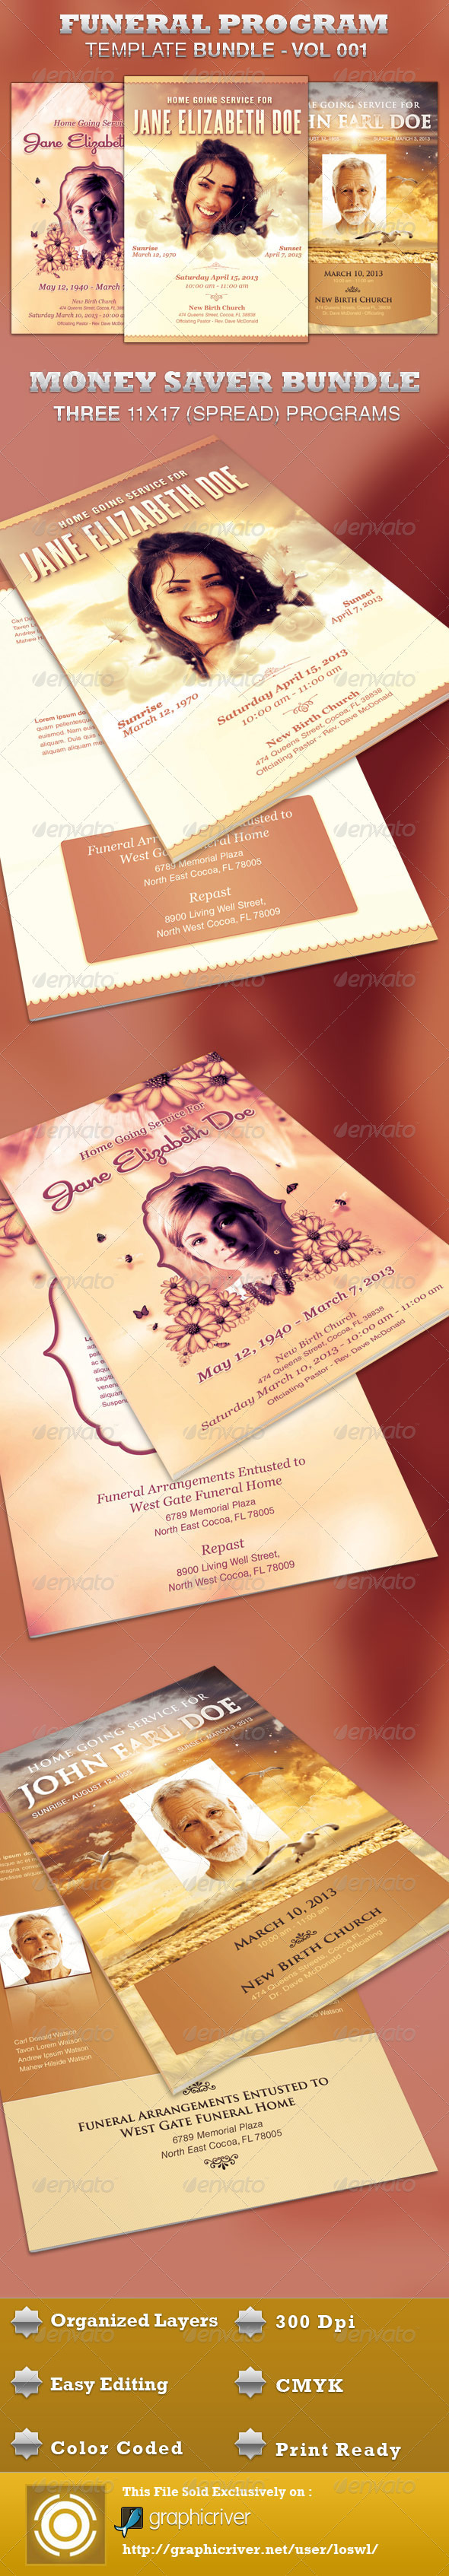 Funeral Program Template Bundle-Vol 001 - Informational Brochures